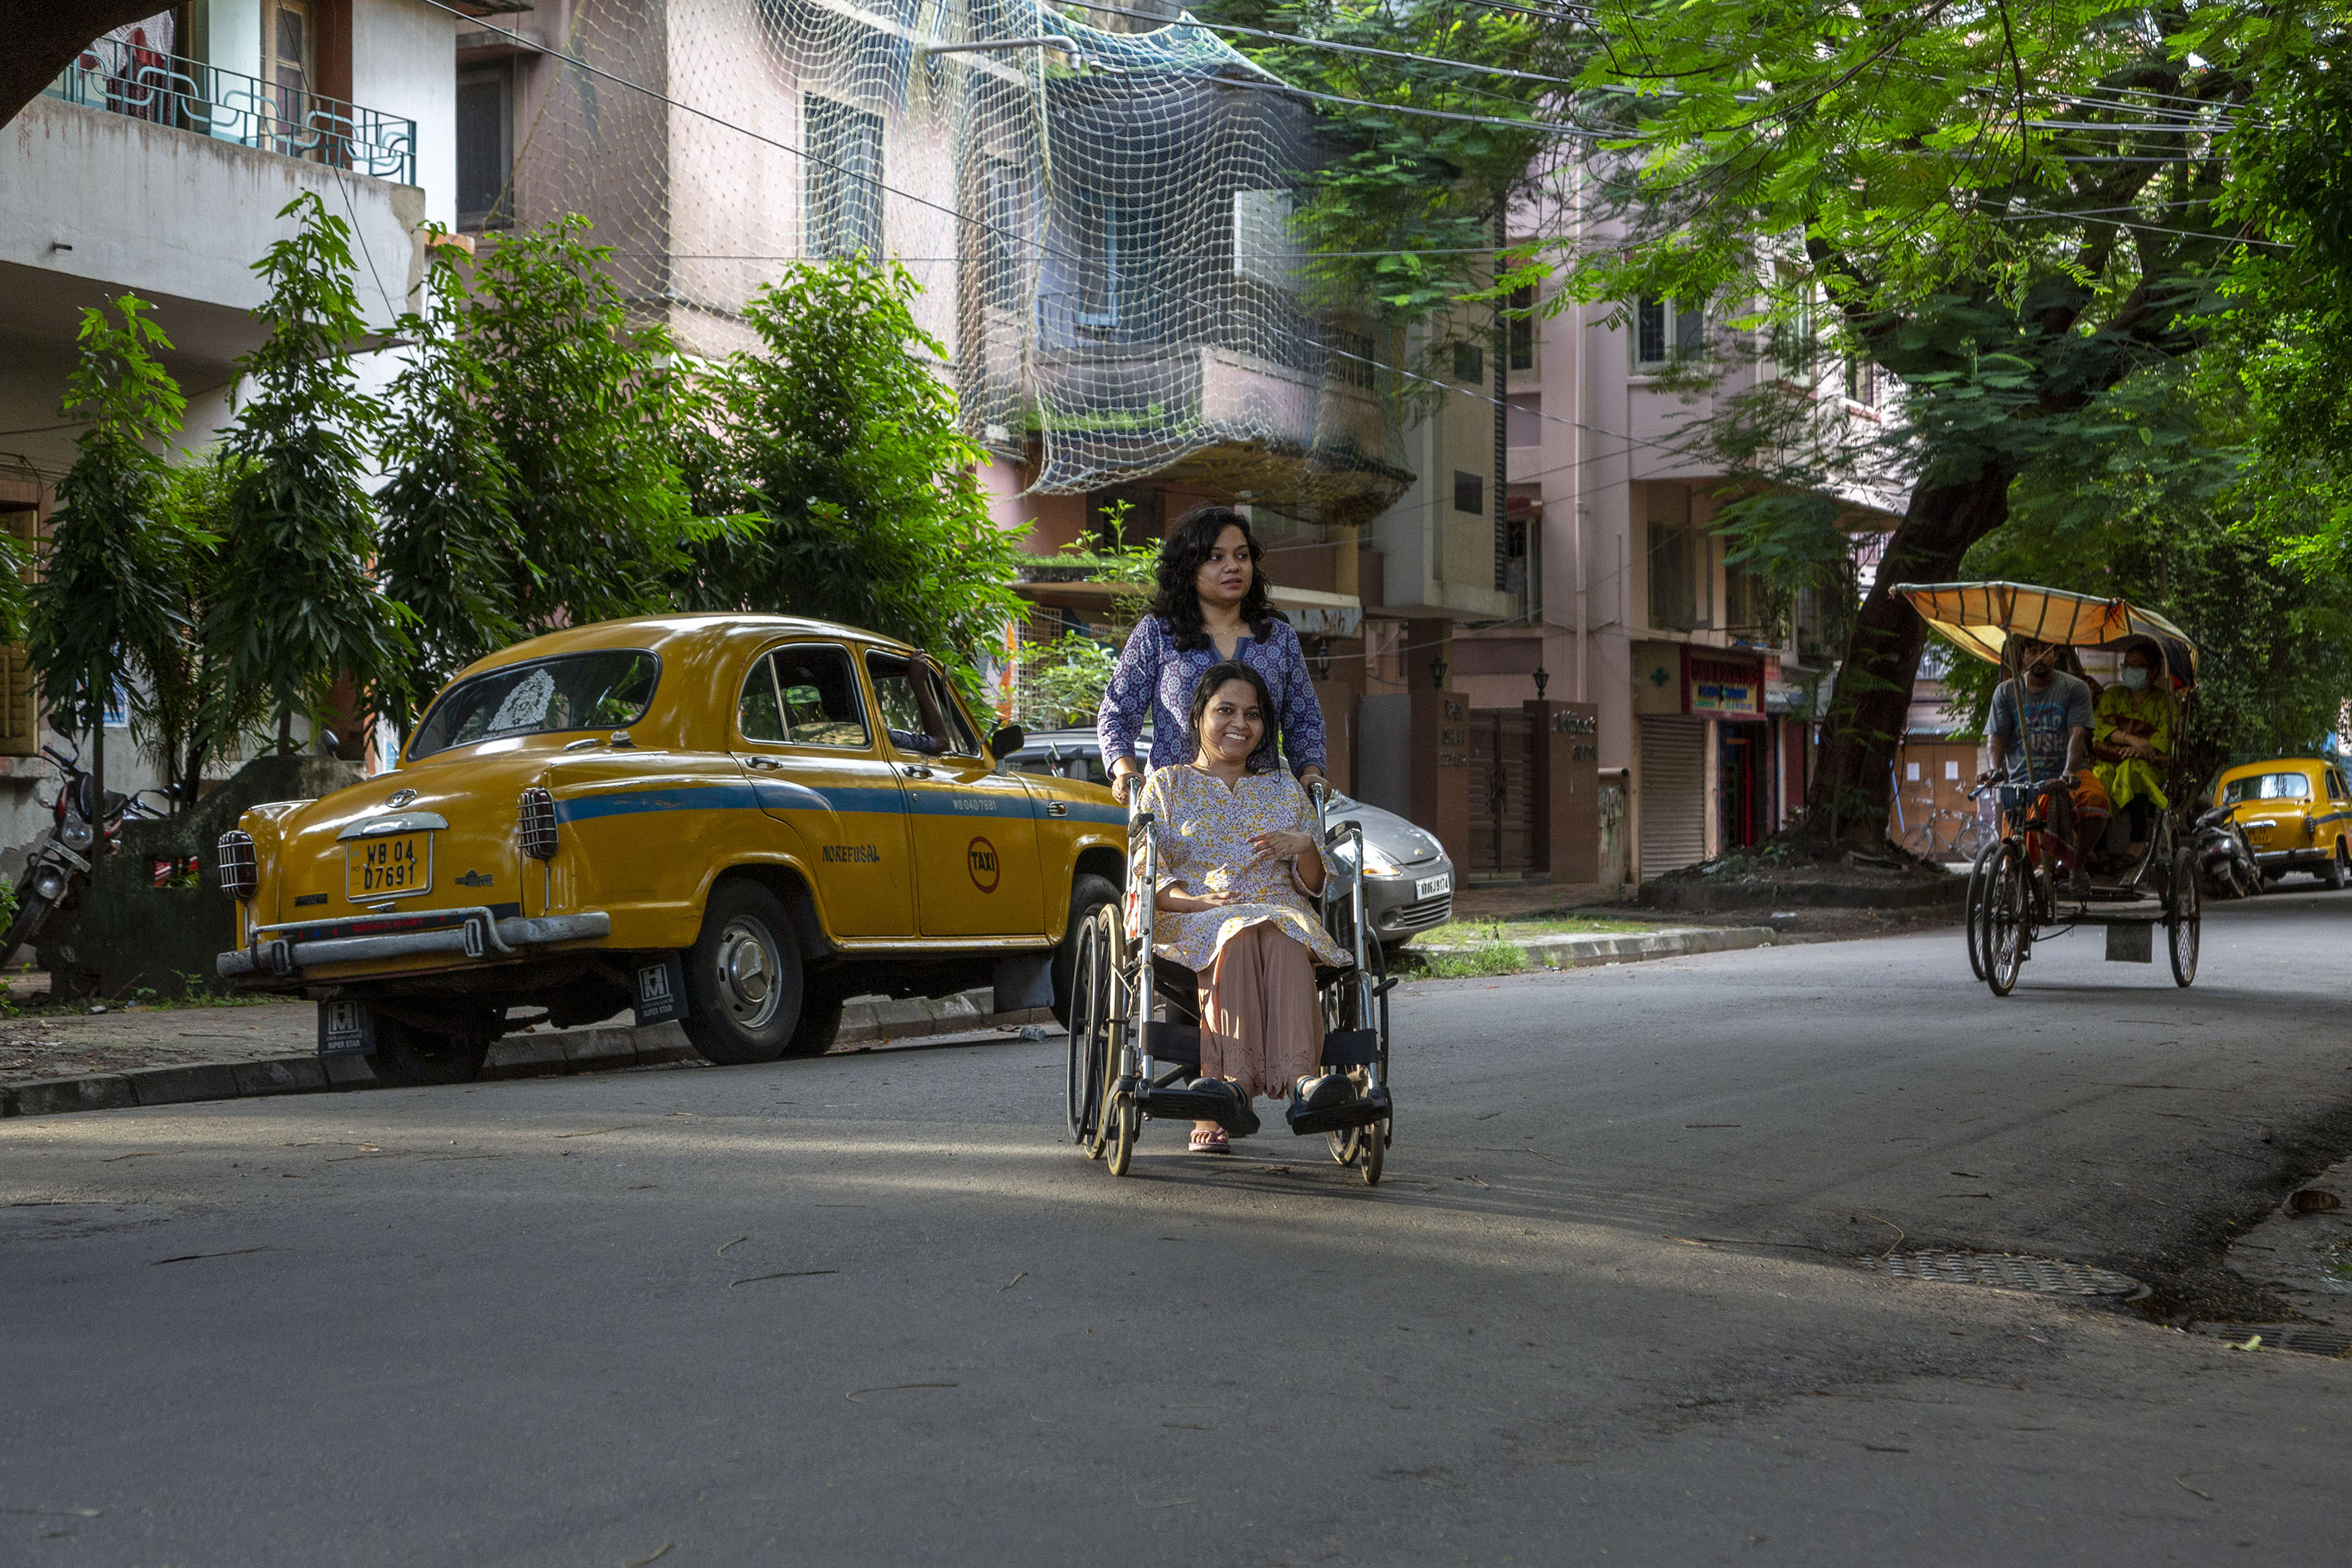 Soumita's younger sister Sayani is pushing her in her wheelchair and crossing a tarred road. A yellow Ambassador taxi is parked on the left side of the road. A cycle-rickshaw is coming towards us. The road is lined with trees and double-storeyed flats painted pink. Sayani, who has shoulder-length wavy hair, wears a full-sleeved kurta in a purple and grey print. Soumita is in a white kurta with a delicate yellow and purple print, and a peach-coloured salwar.